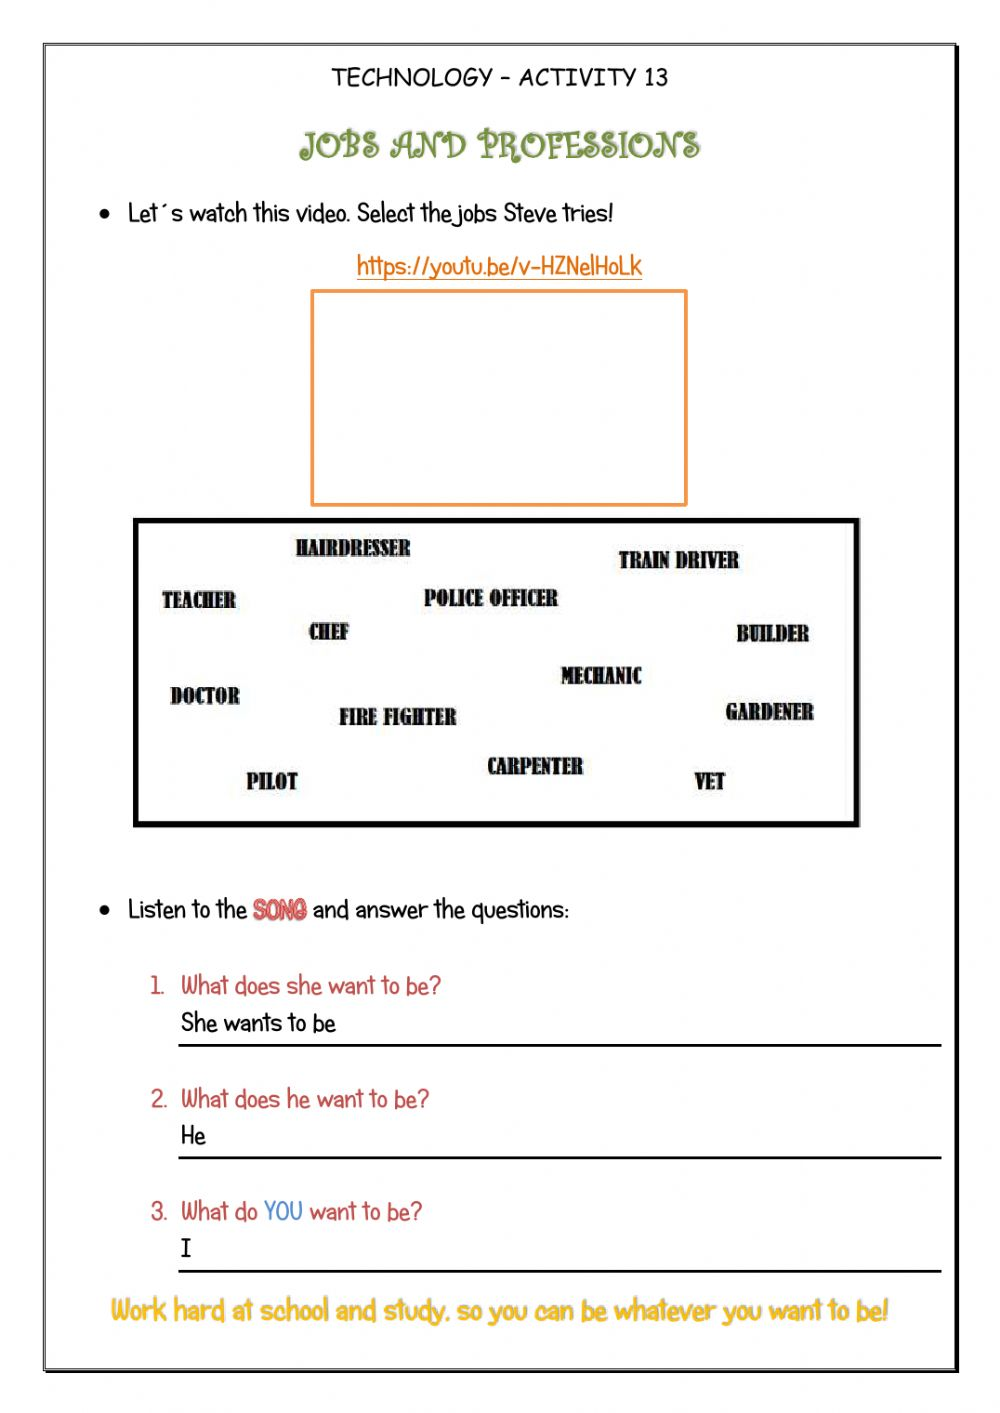 medium resolution of Jobs and professions-4th form worksheet